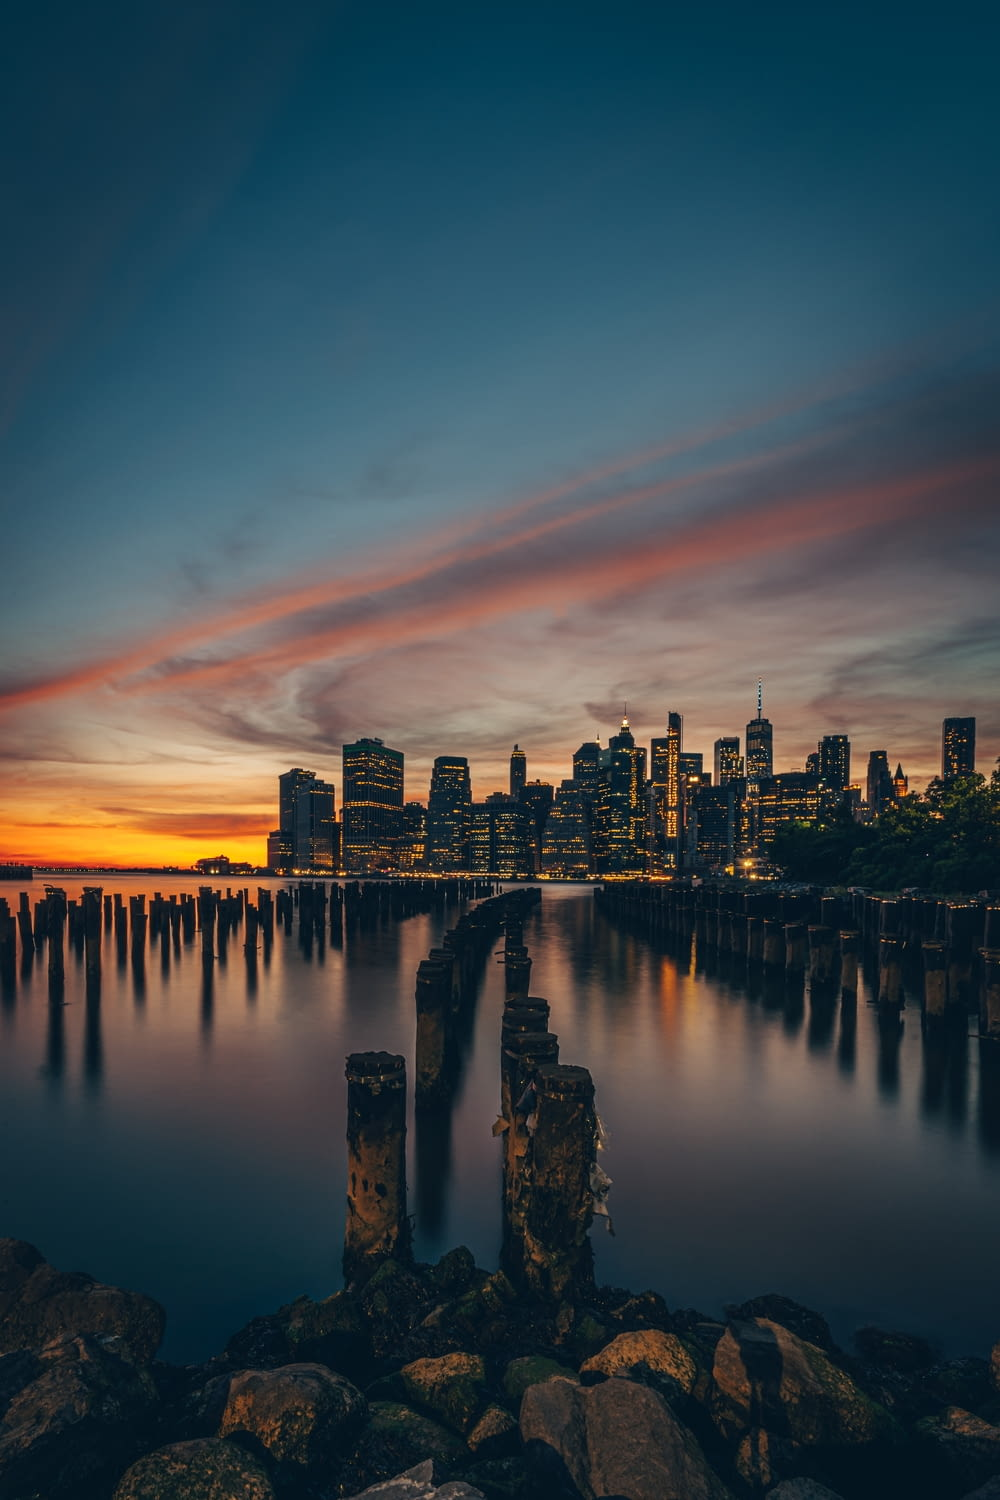 city skyline across body of water during sunset